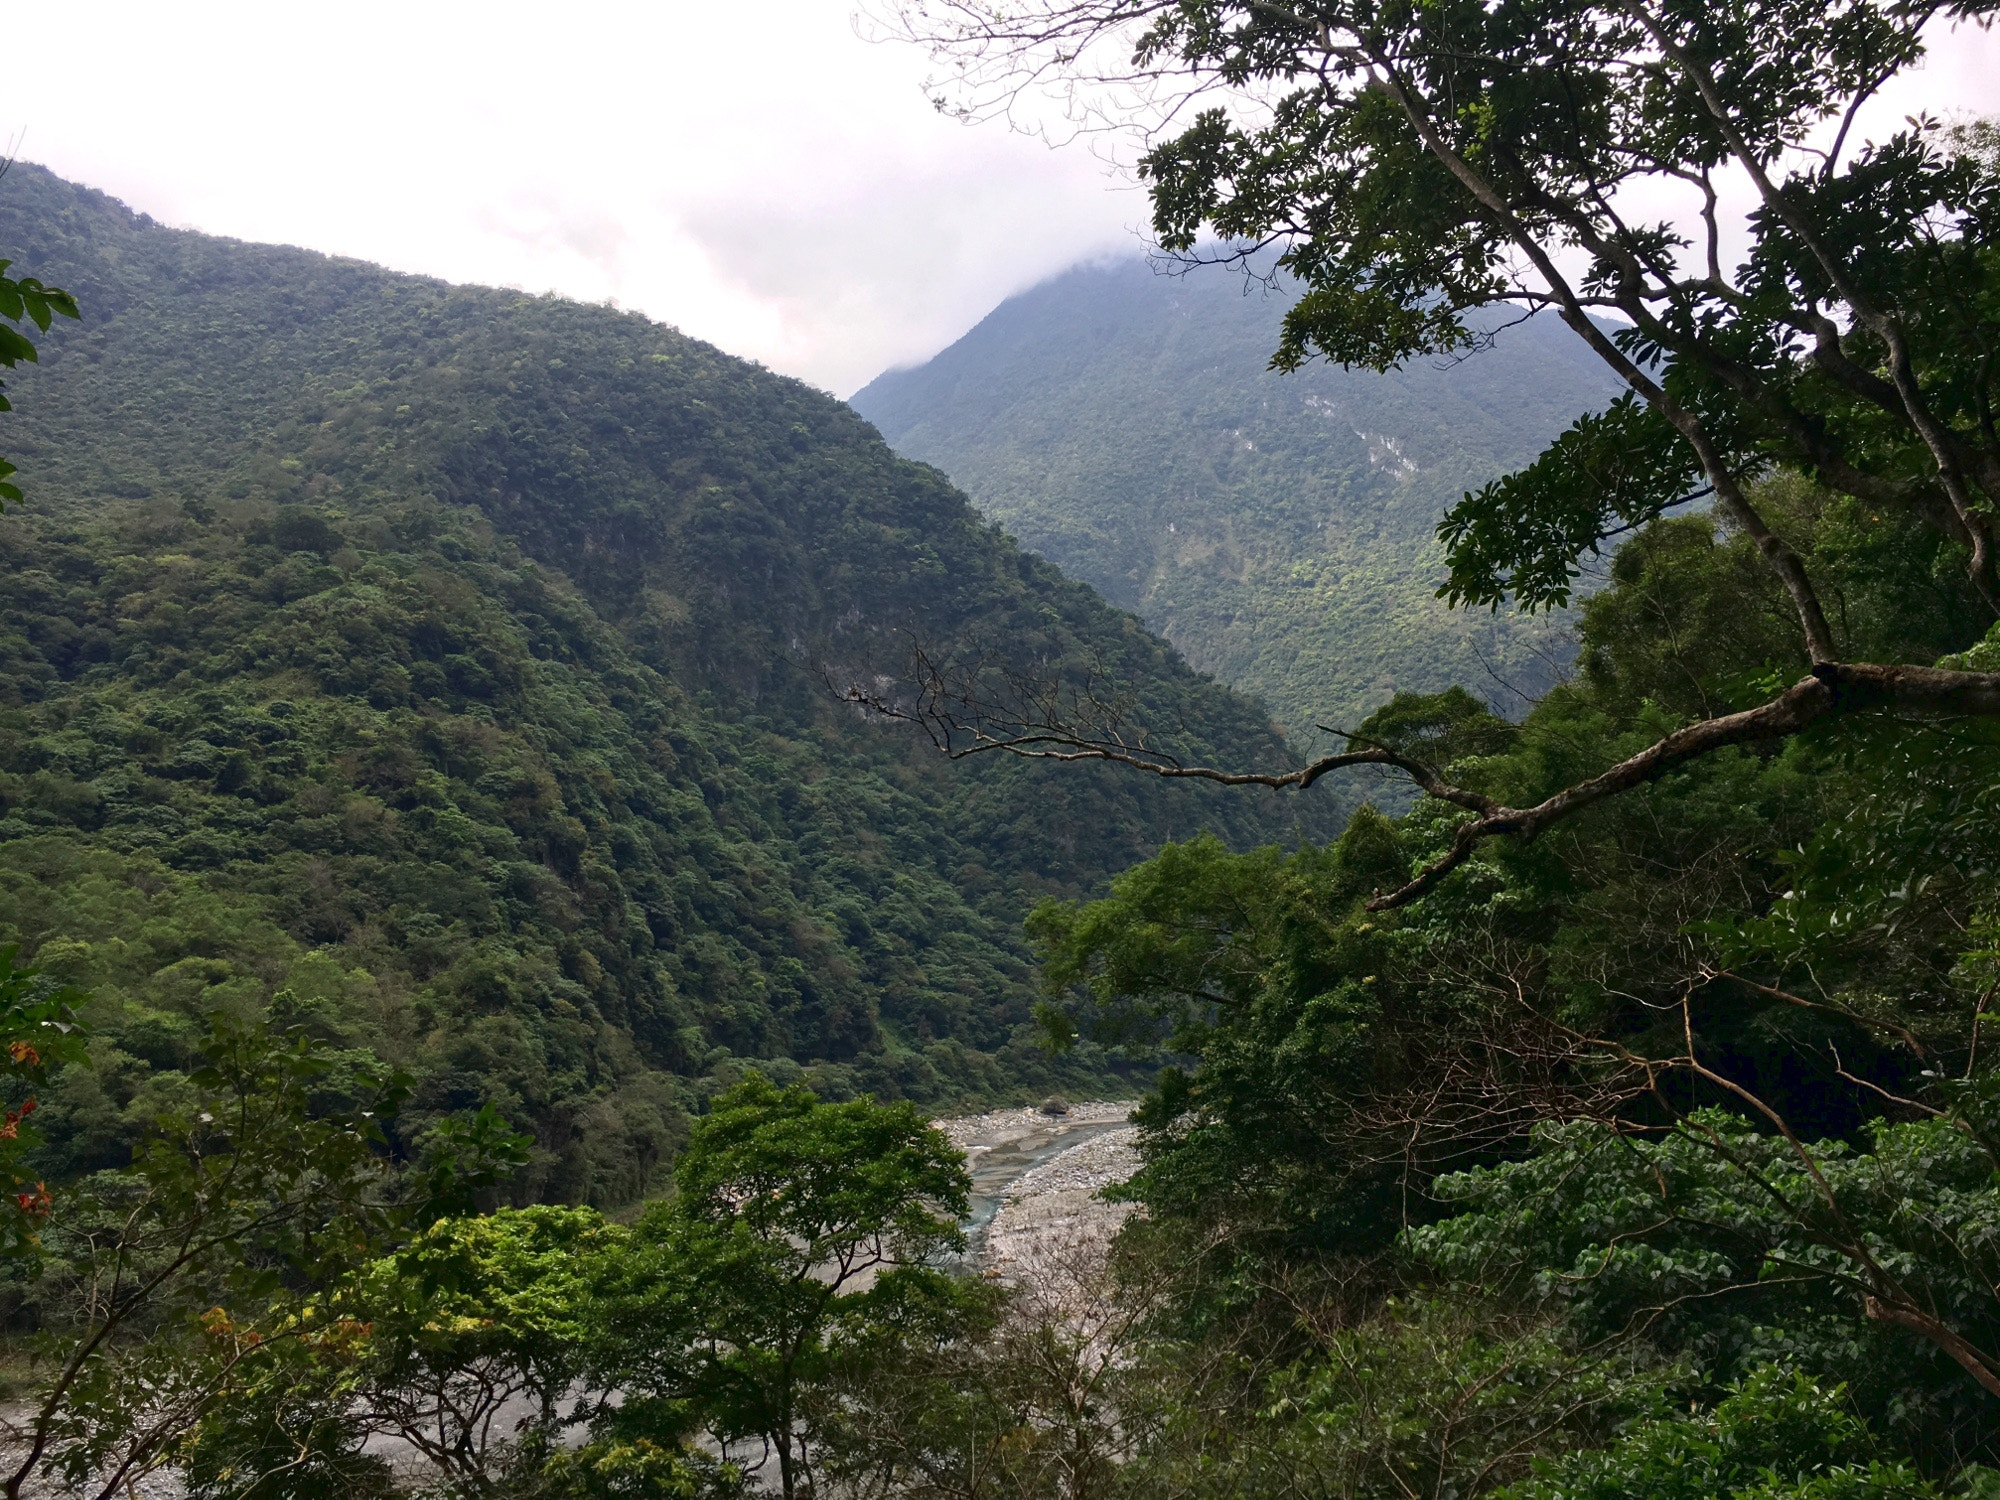 Northeastern Taiwan is a blanket of green forest